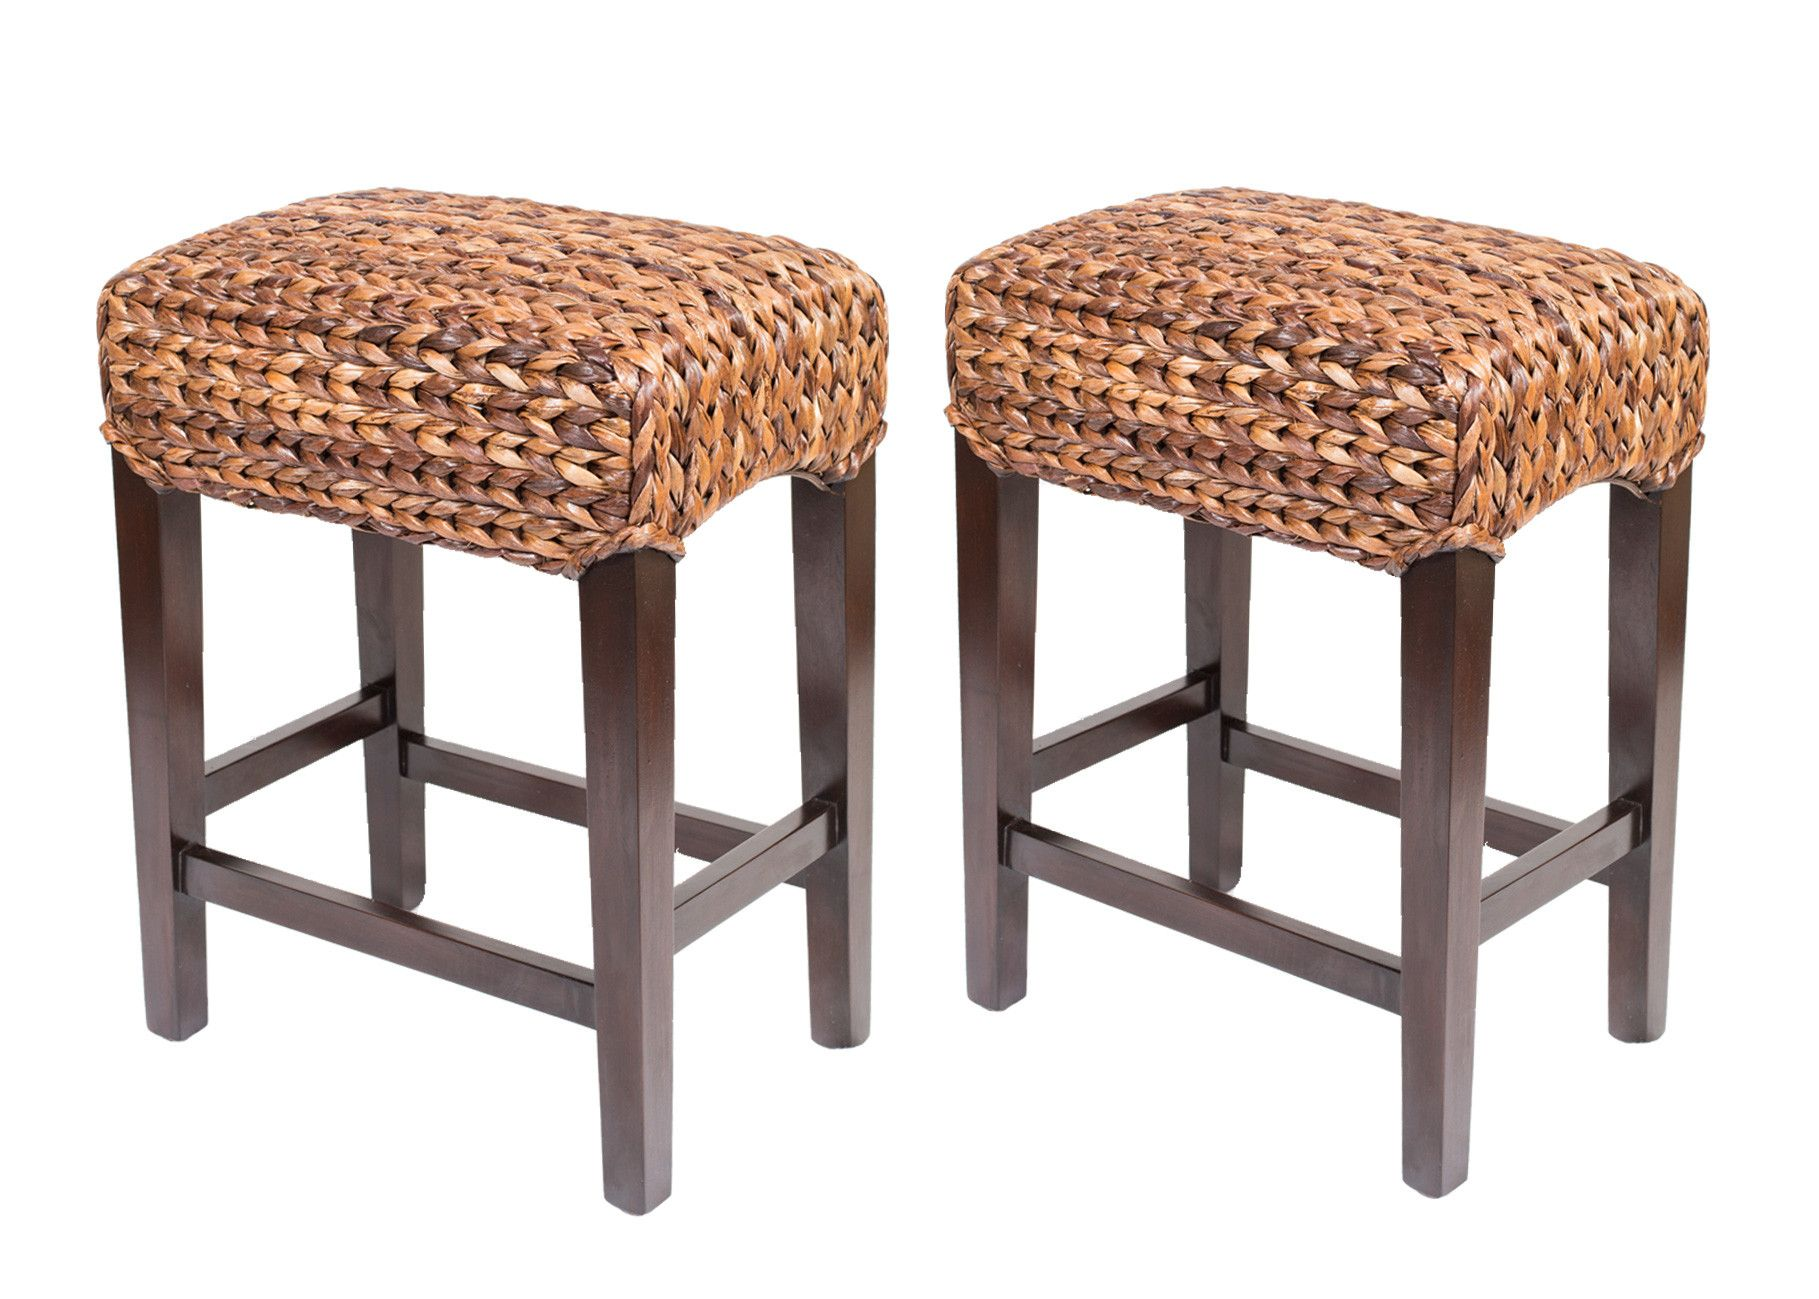 Birdrock Home Seagrass Counter Stool Set Of 2 Counter Stools Backless Counter Stools Bar Stools